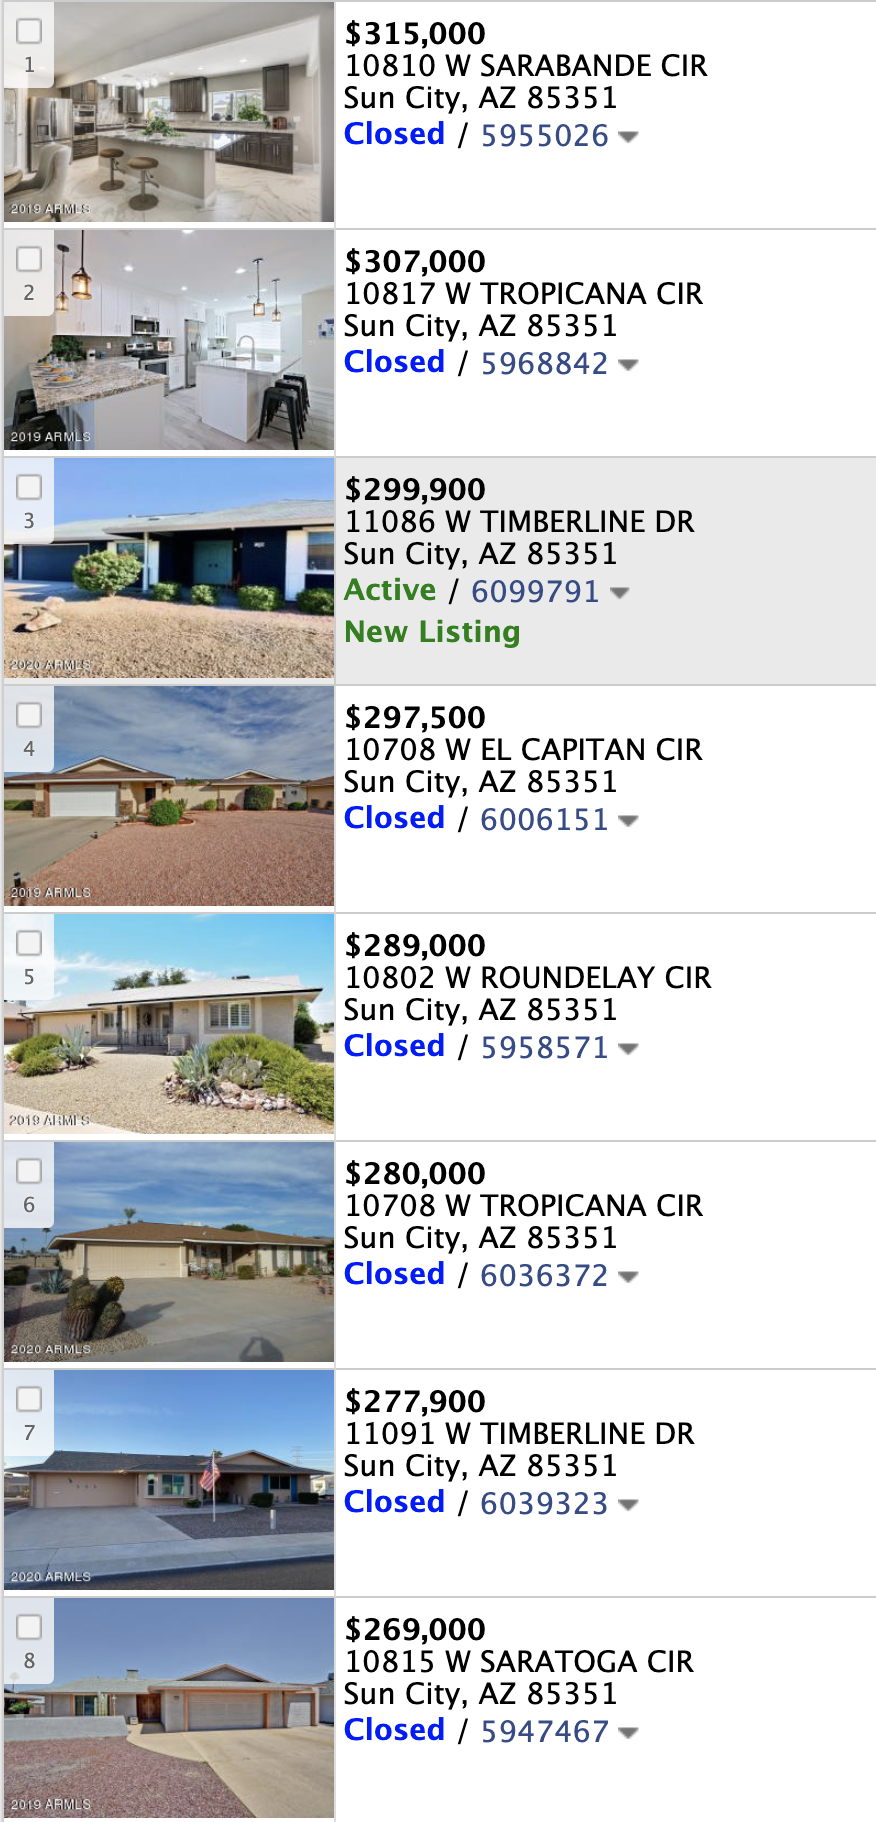 10805 W Saratoga Cir, Sun City AZ 85351 comps list